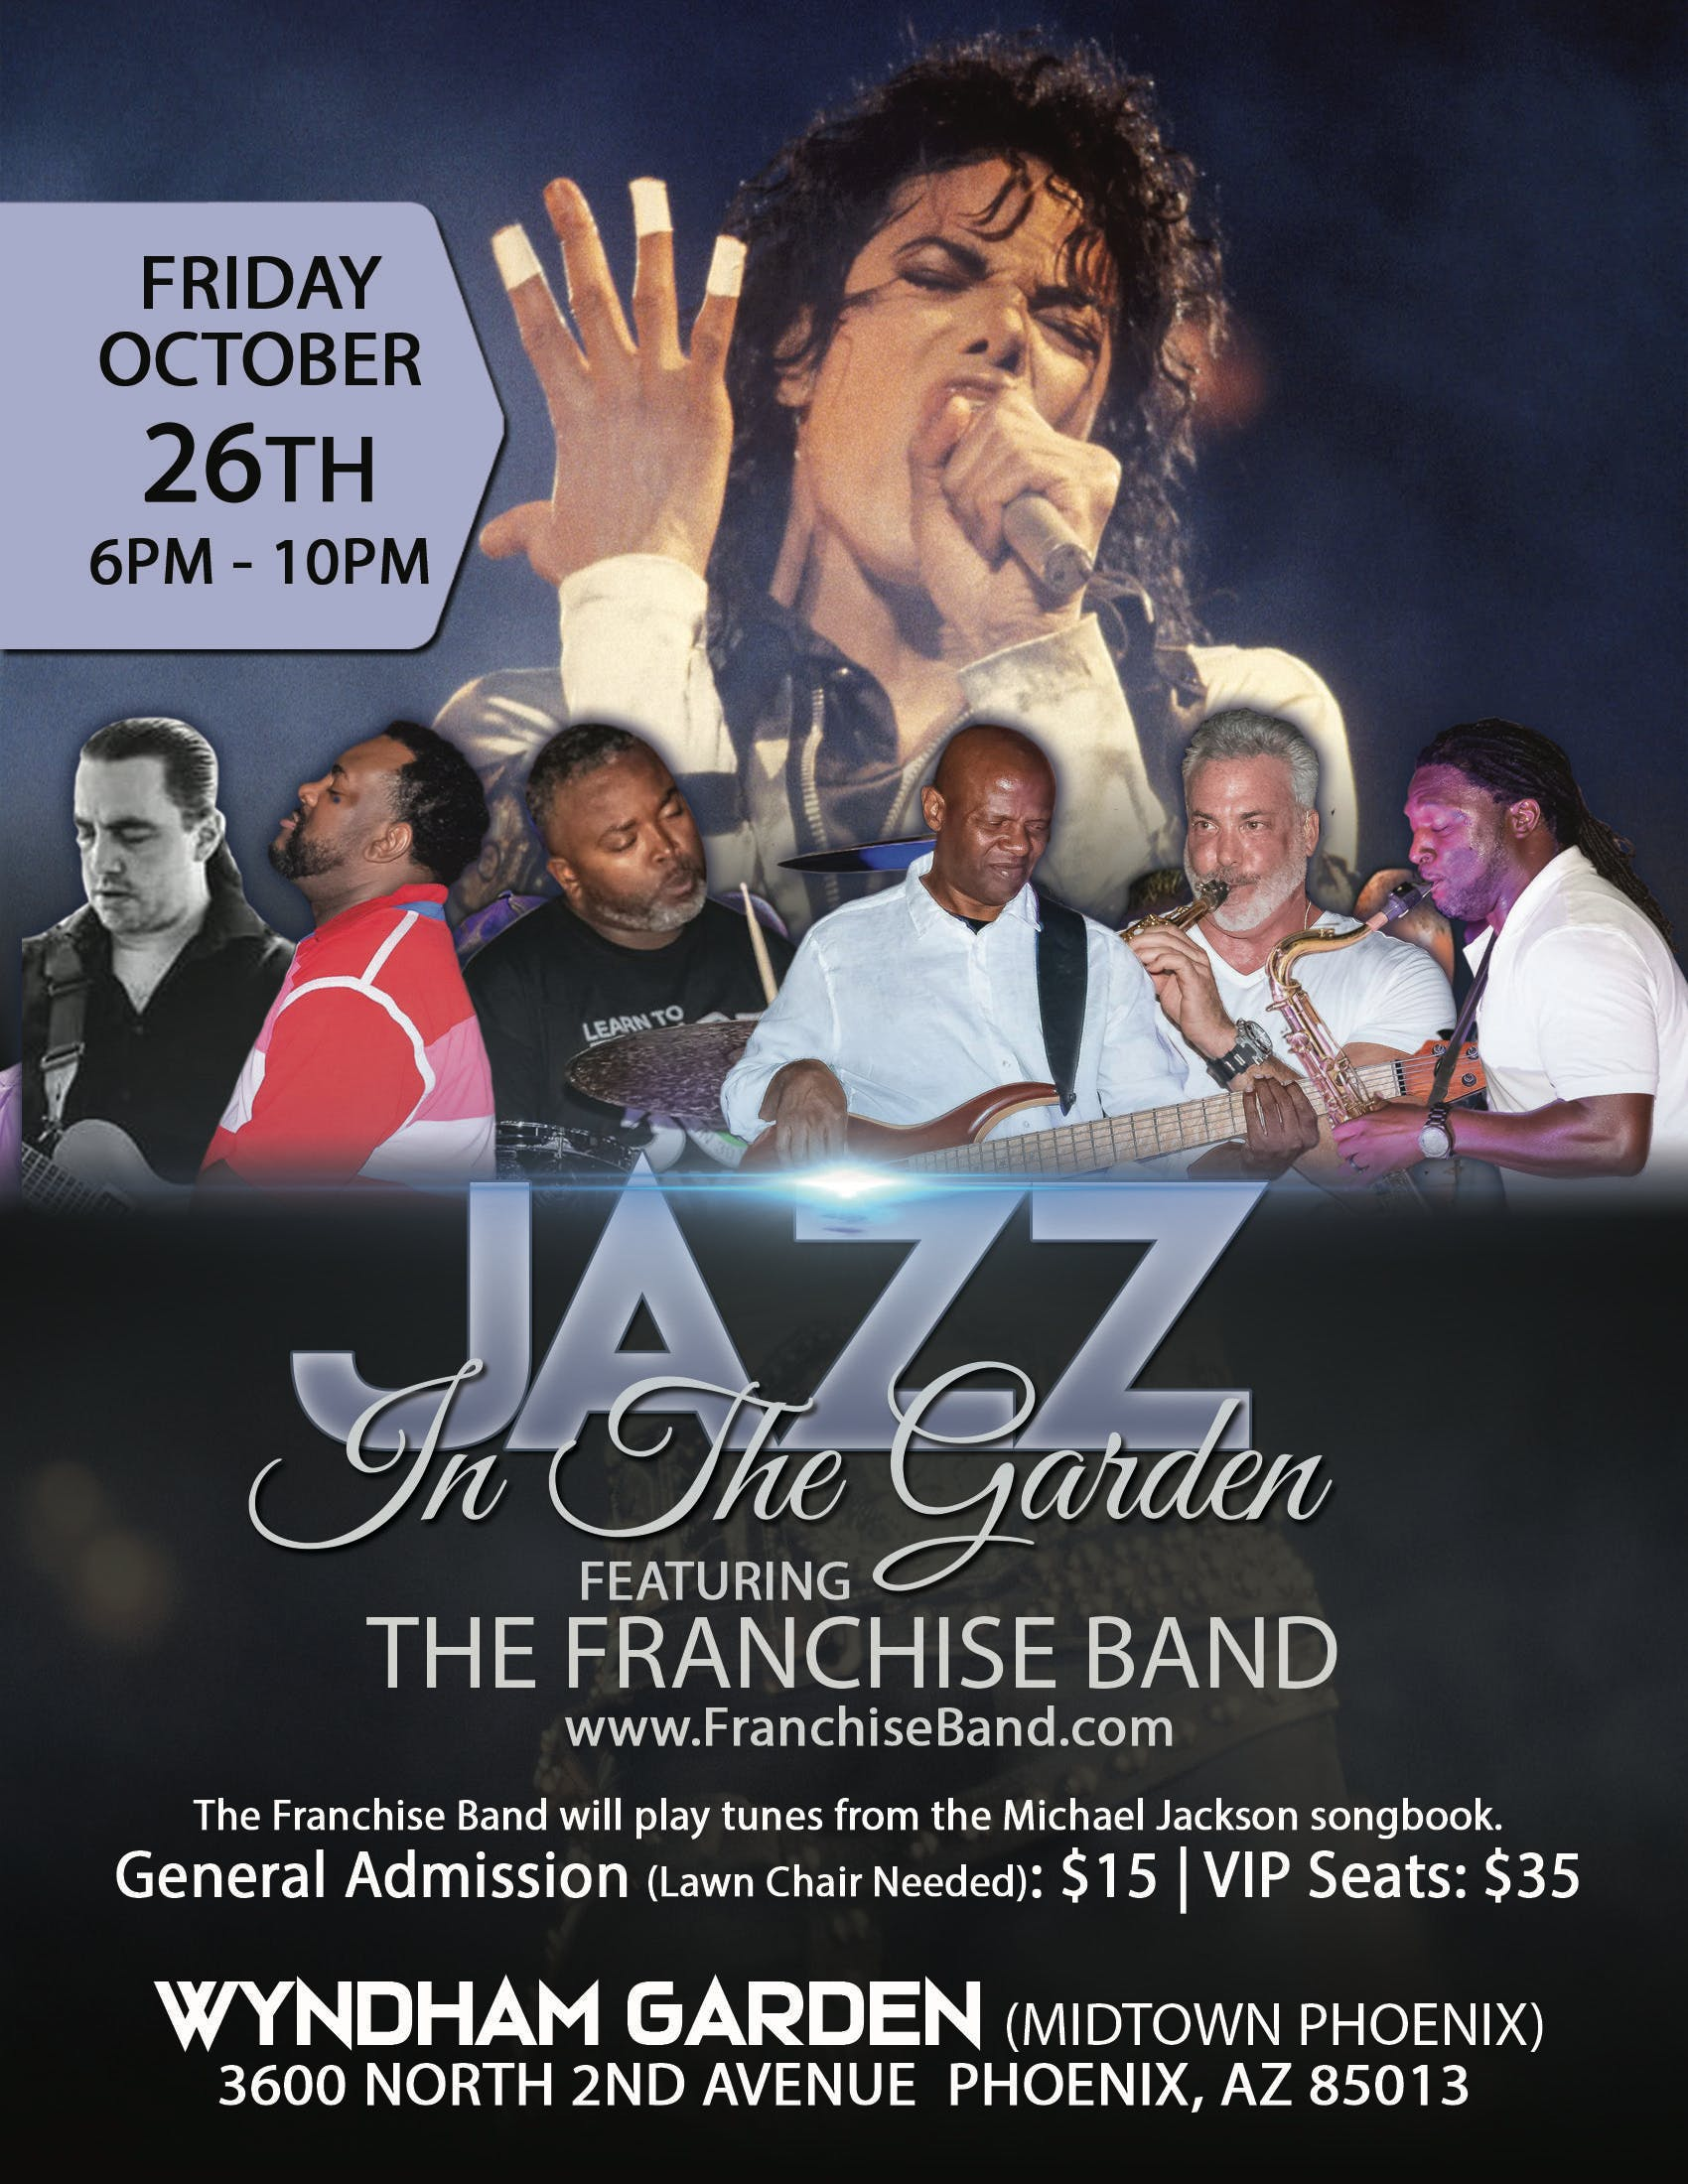 Jazz in the Garden:  The Franchise Band Plays the Michael Jackson Songbook